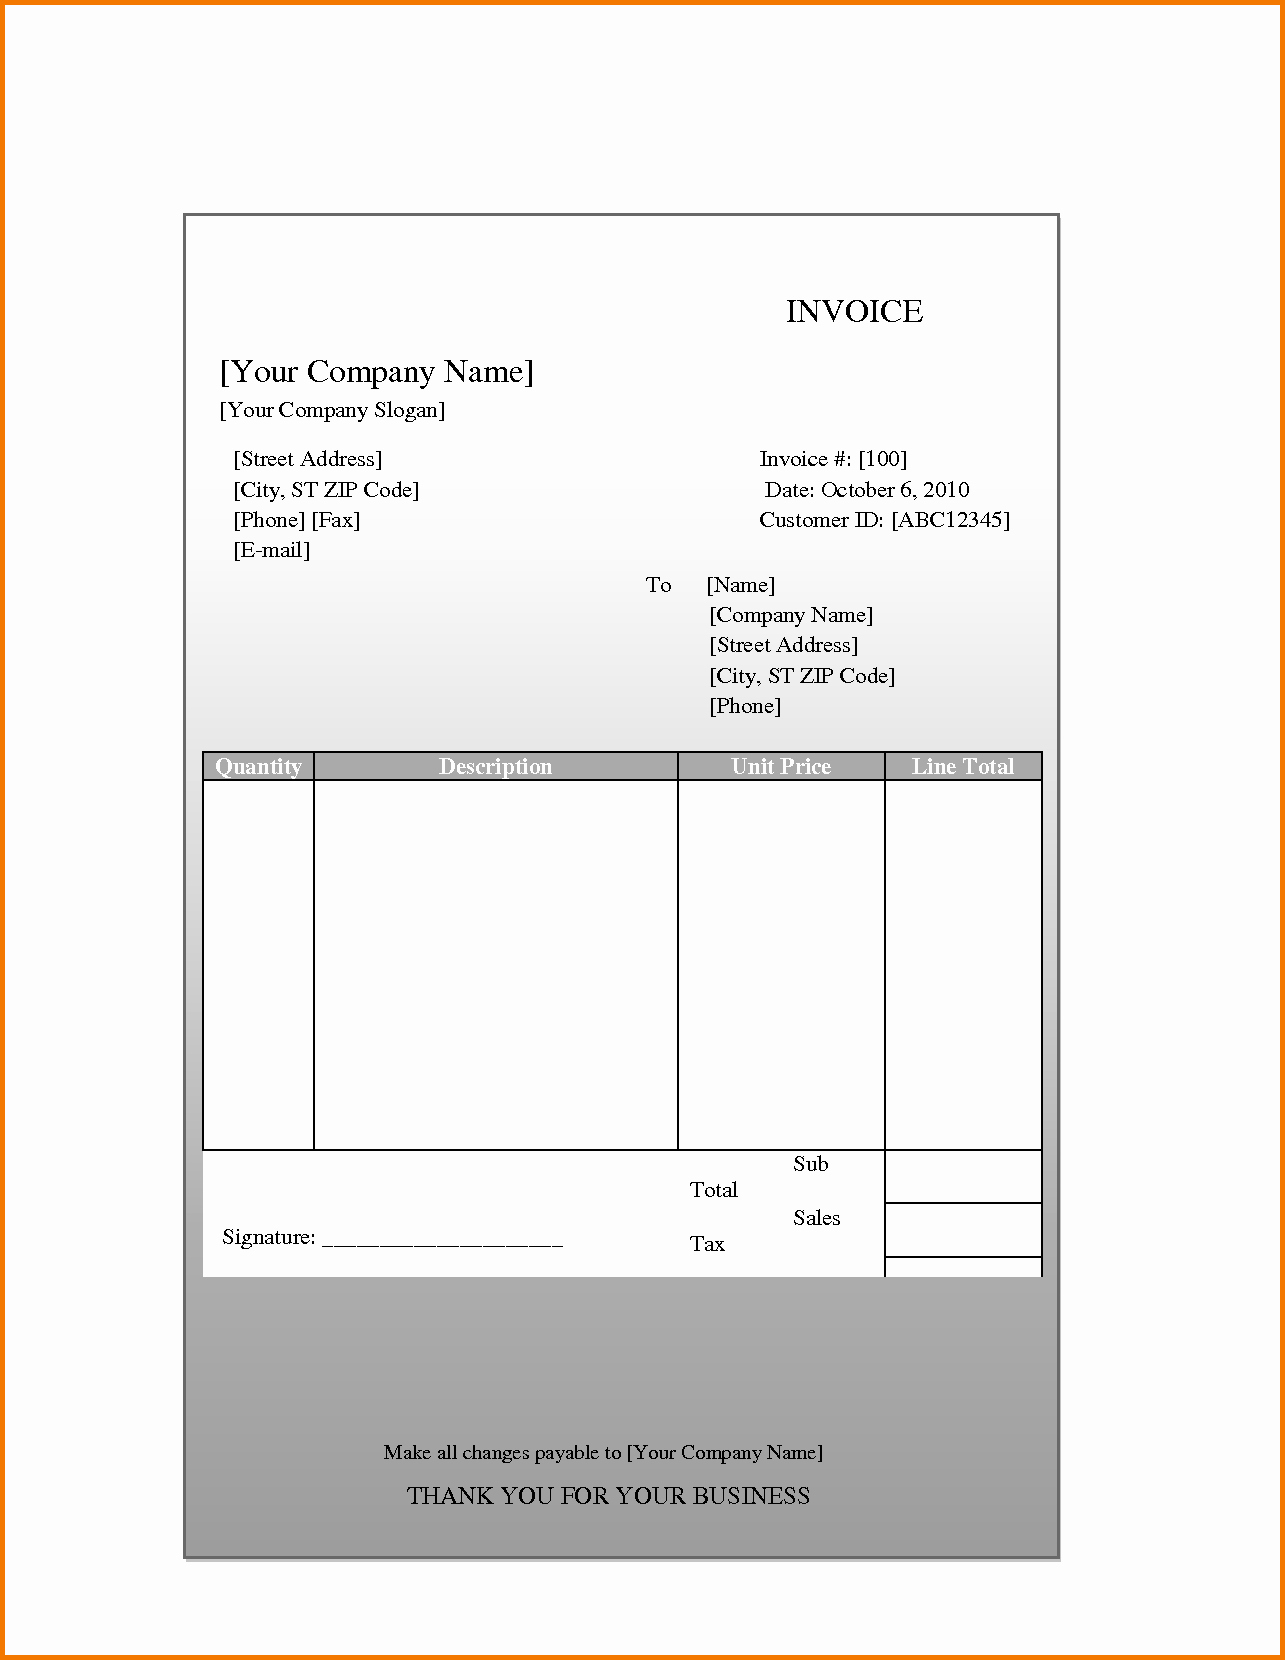 Quickbooks Spreadsheet Templates Throughout Beautiful 30 Examples Professional Quickbooks Invoice Templates